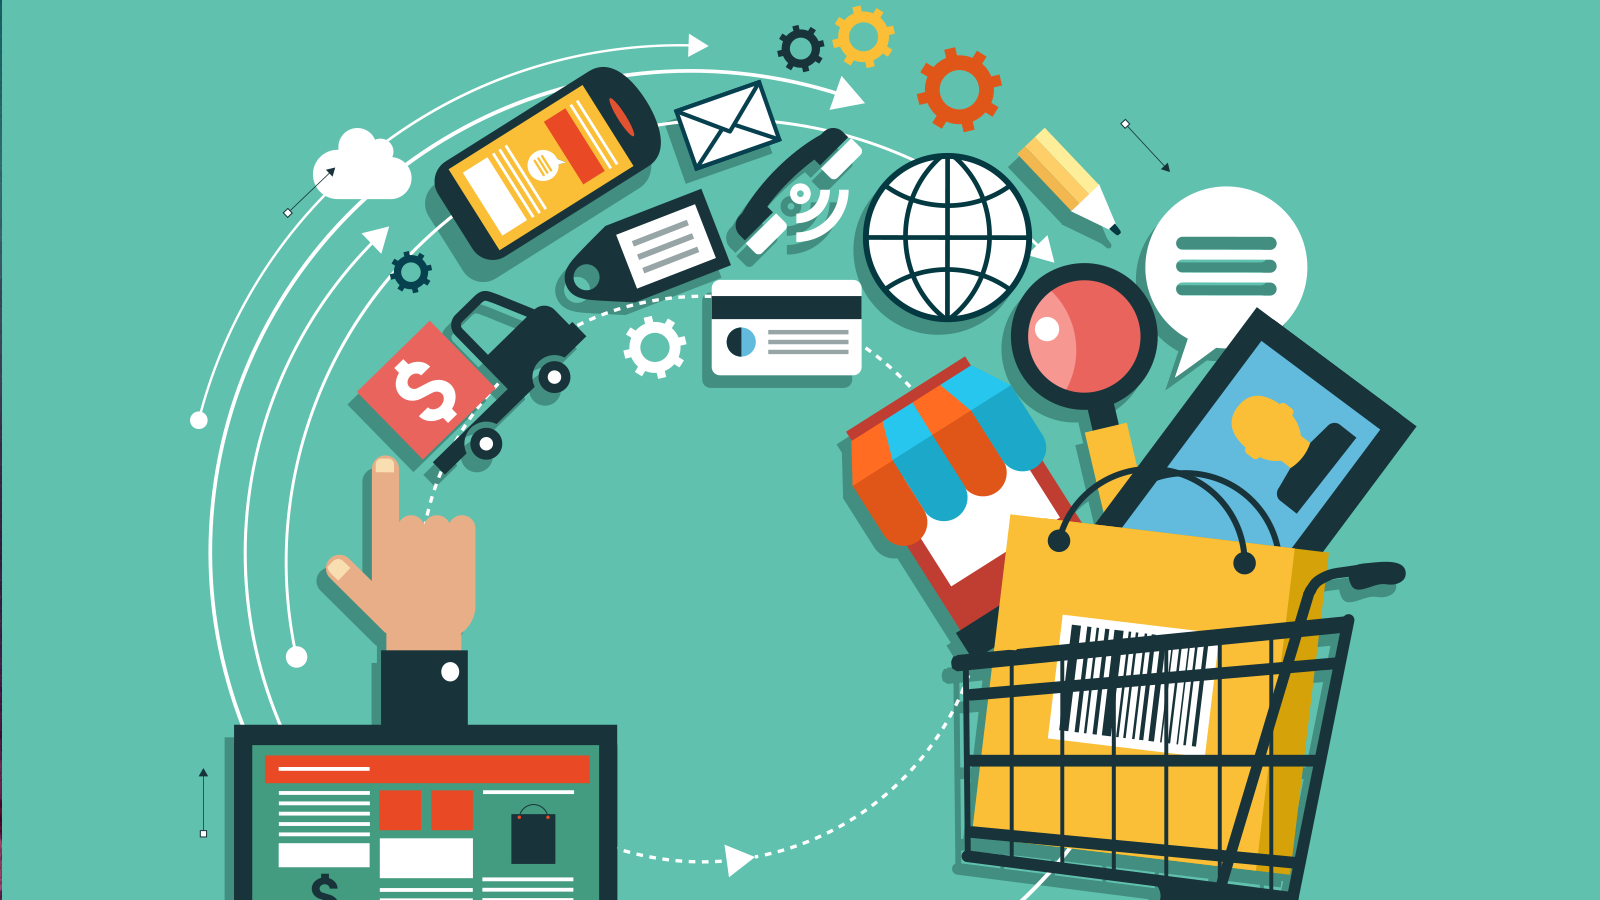 online shopping website project essay Online shopping website project 2325 words | 10 pages project proposal for online shop implementation by asamoah joseph 02615310 alex foso introduction the internet is an integral part of our lives.